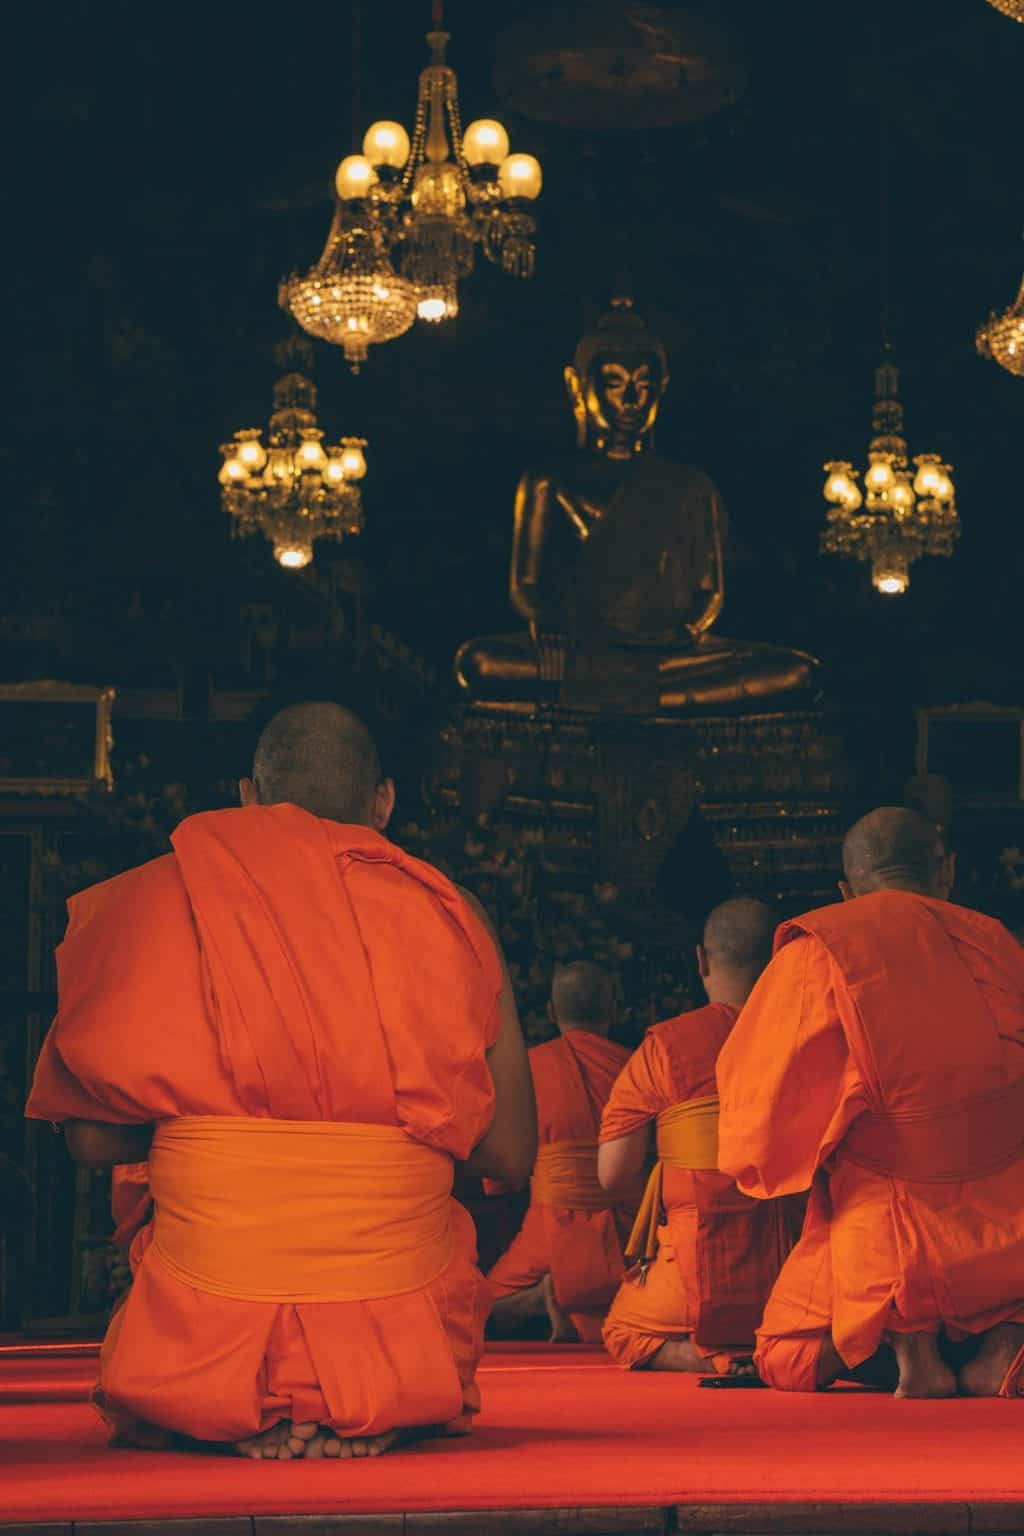 a group of kneeling monks in orange robes facing a Buddha statue inside a temple, planning a trip to thailand